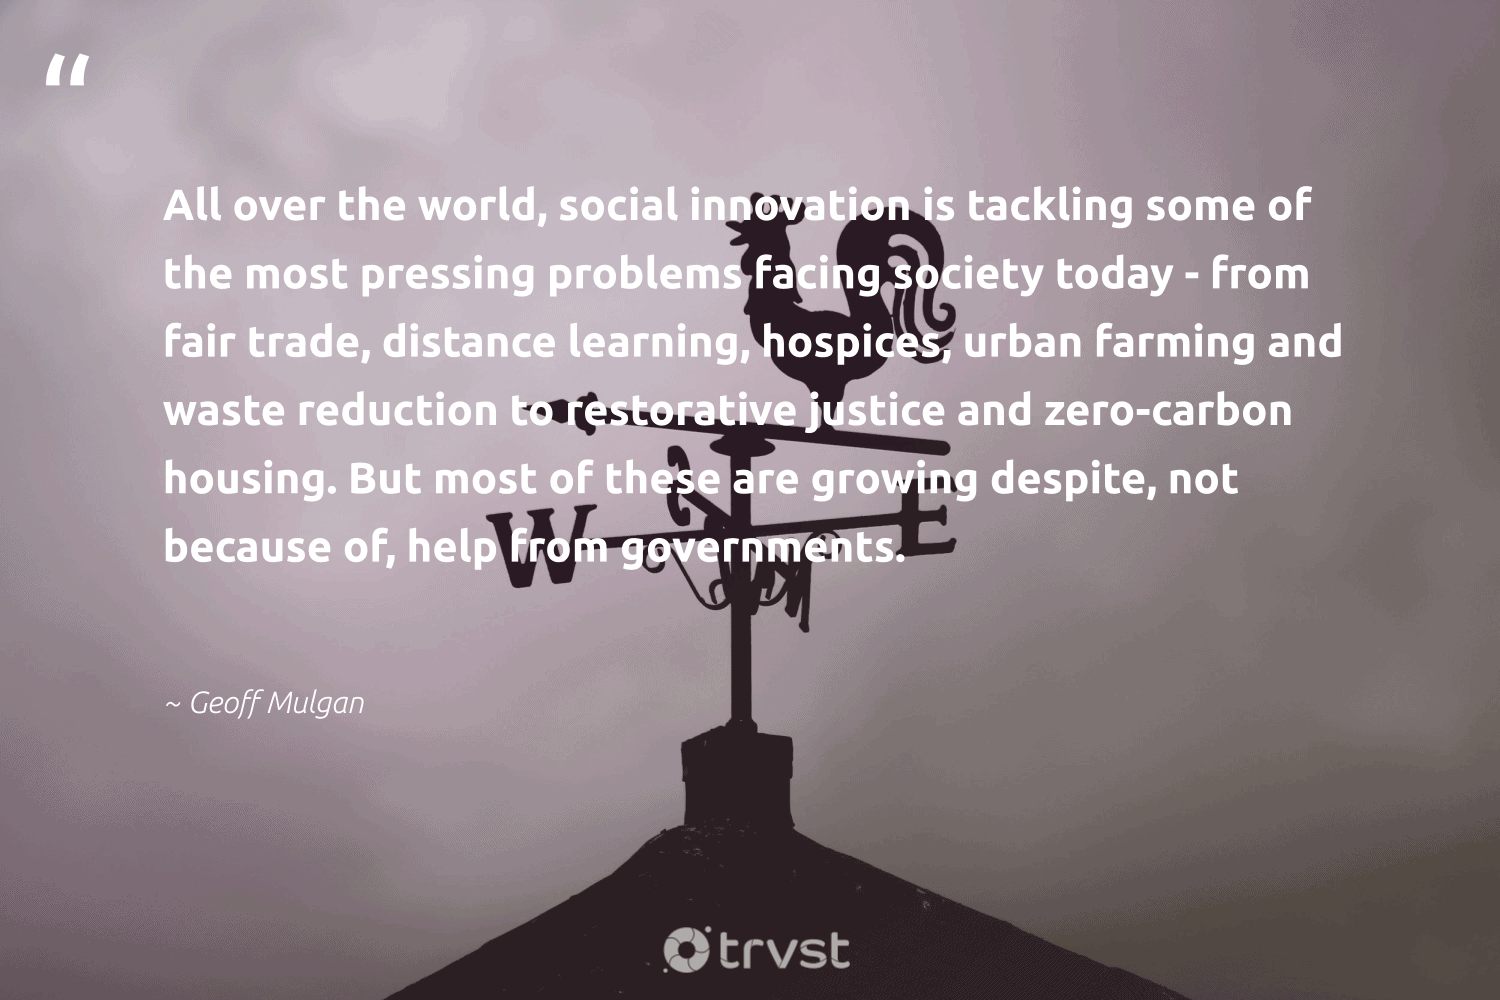 """All over the world, social innovation is tackling some of the most pressing problems facing society today - from fair trade, distance learning, hospices, urban farming and waste reduction to restorative justice and zero-carbon housing. But most of these are growing despite, not because of, help from governments.""  - Geoff Mulgan #trvst #quotes #justice #waste #carbon #zerocarbon #socialinnovation #society #betterplanet #dosomething #makeadifference #ecoconscious"